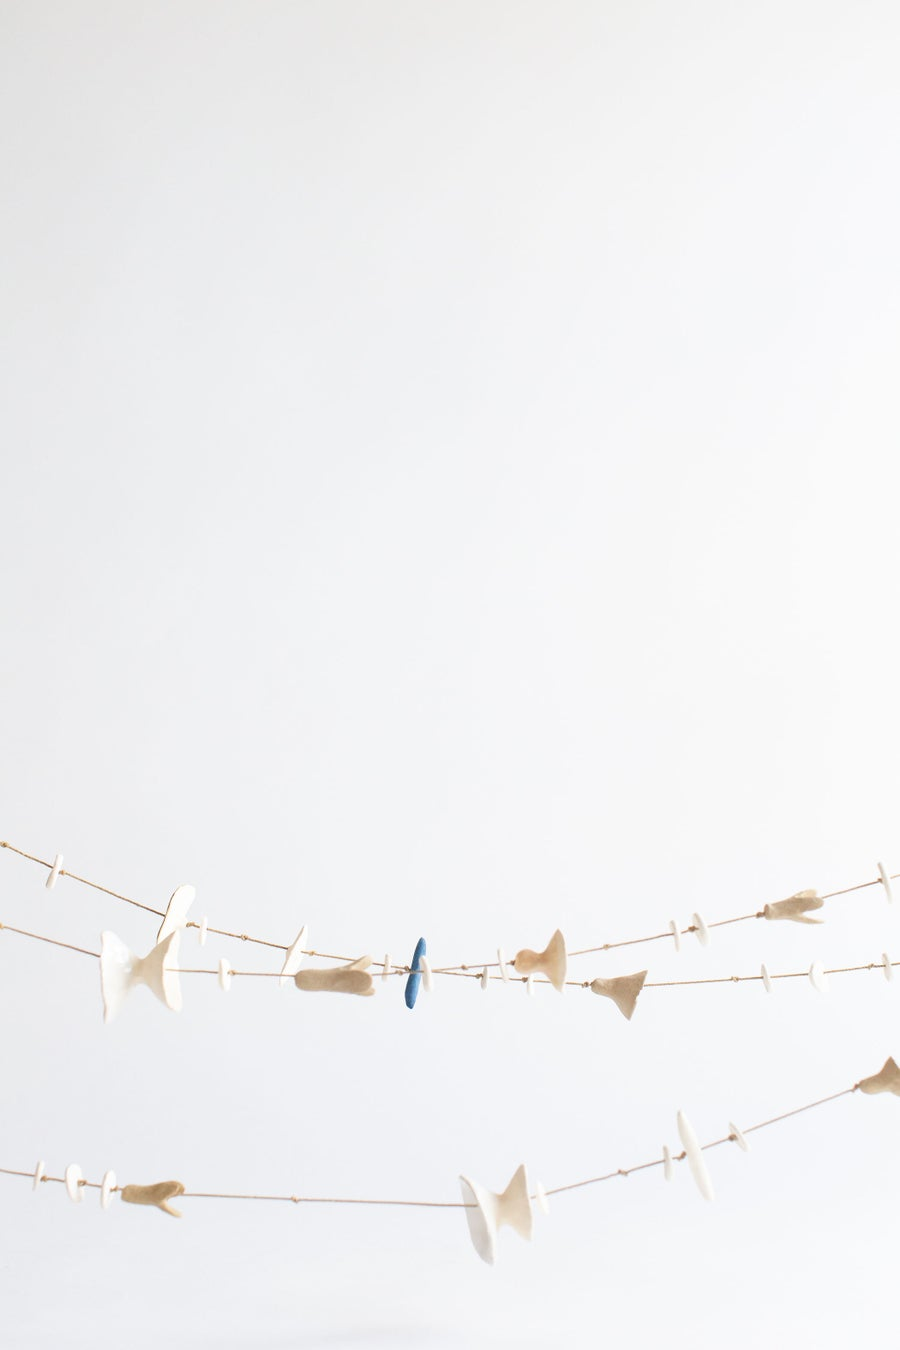 Image of Porcelain Stoneware Garlands - Classic White and tan